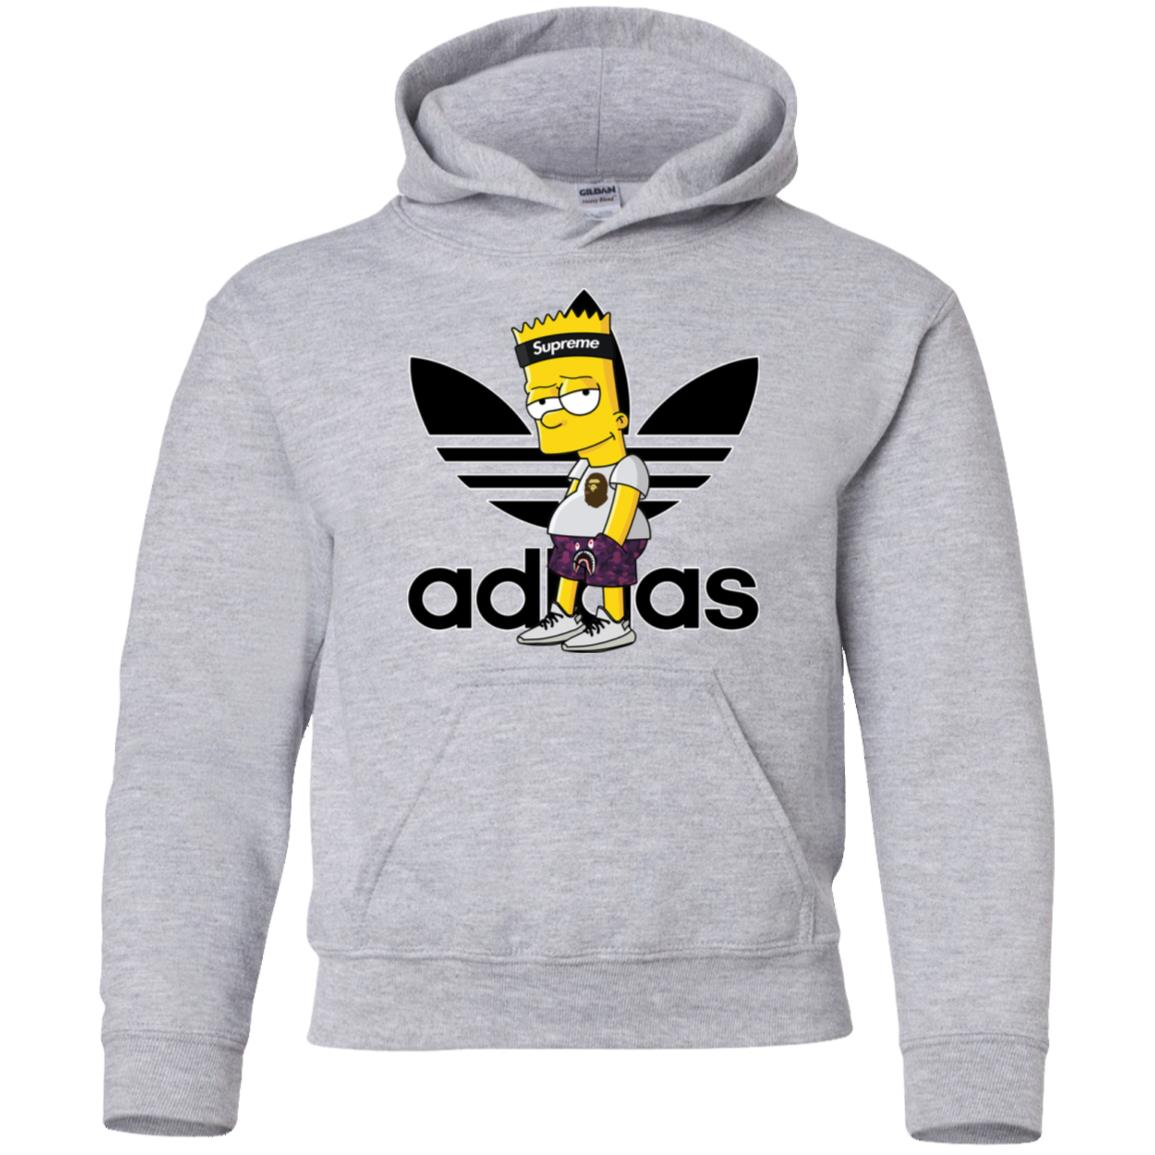 44b638ae Bart Simpson With Adidas Yeezy Supreme Youth Hoodie